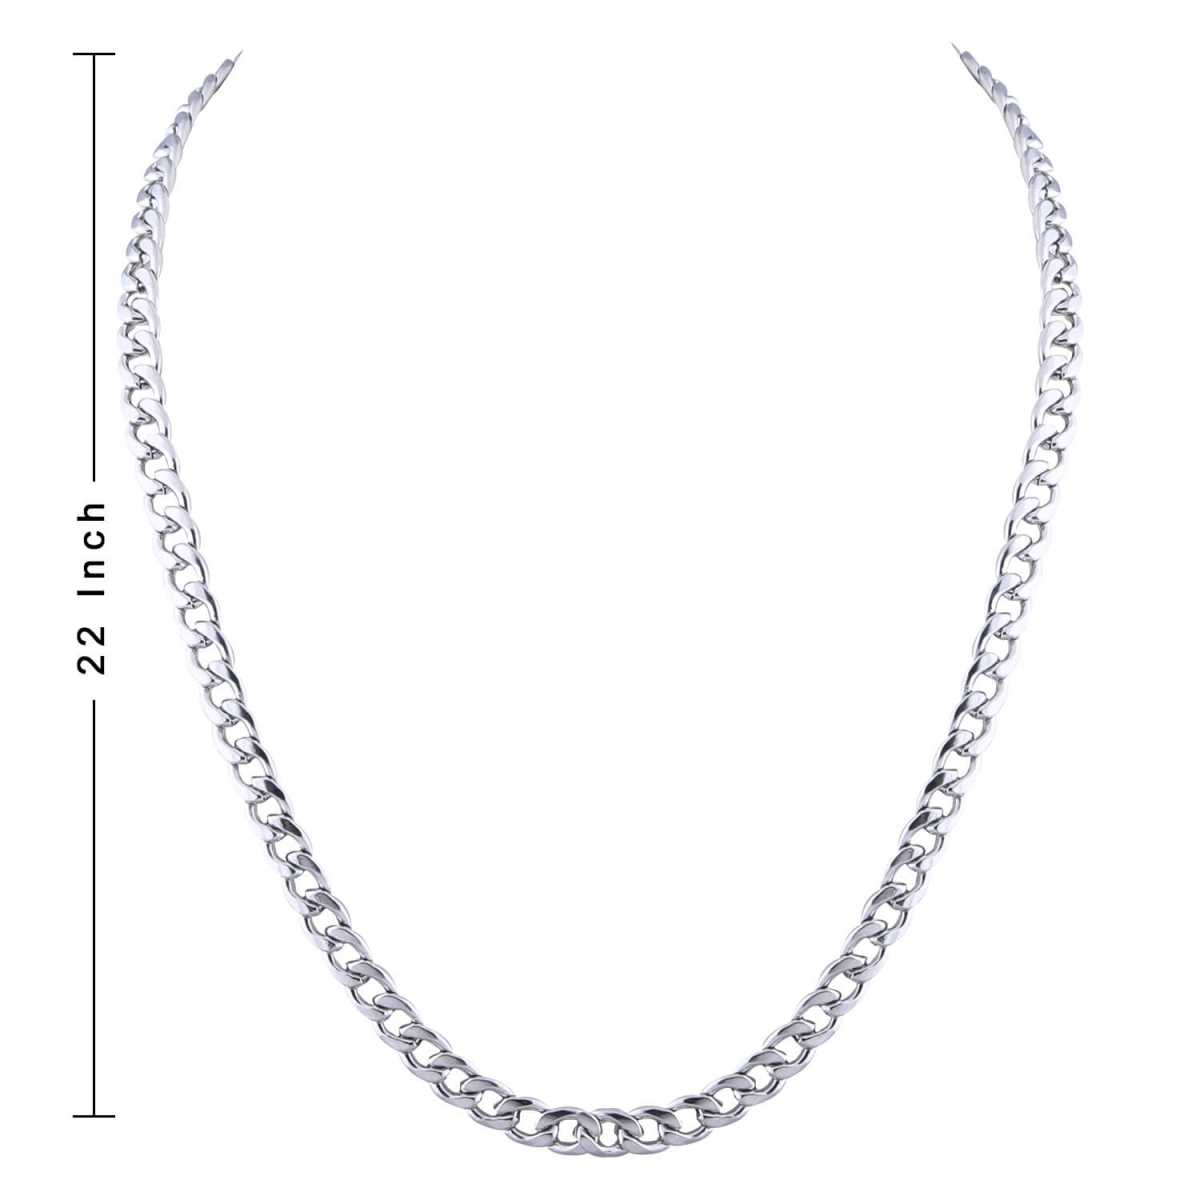 SilverPlated Elegant Cuban Chain For Men and boy Jewellery